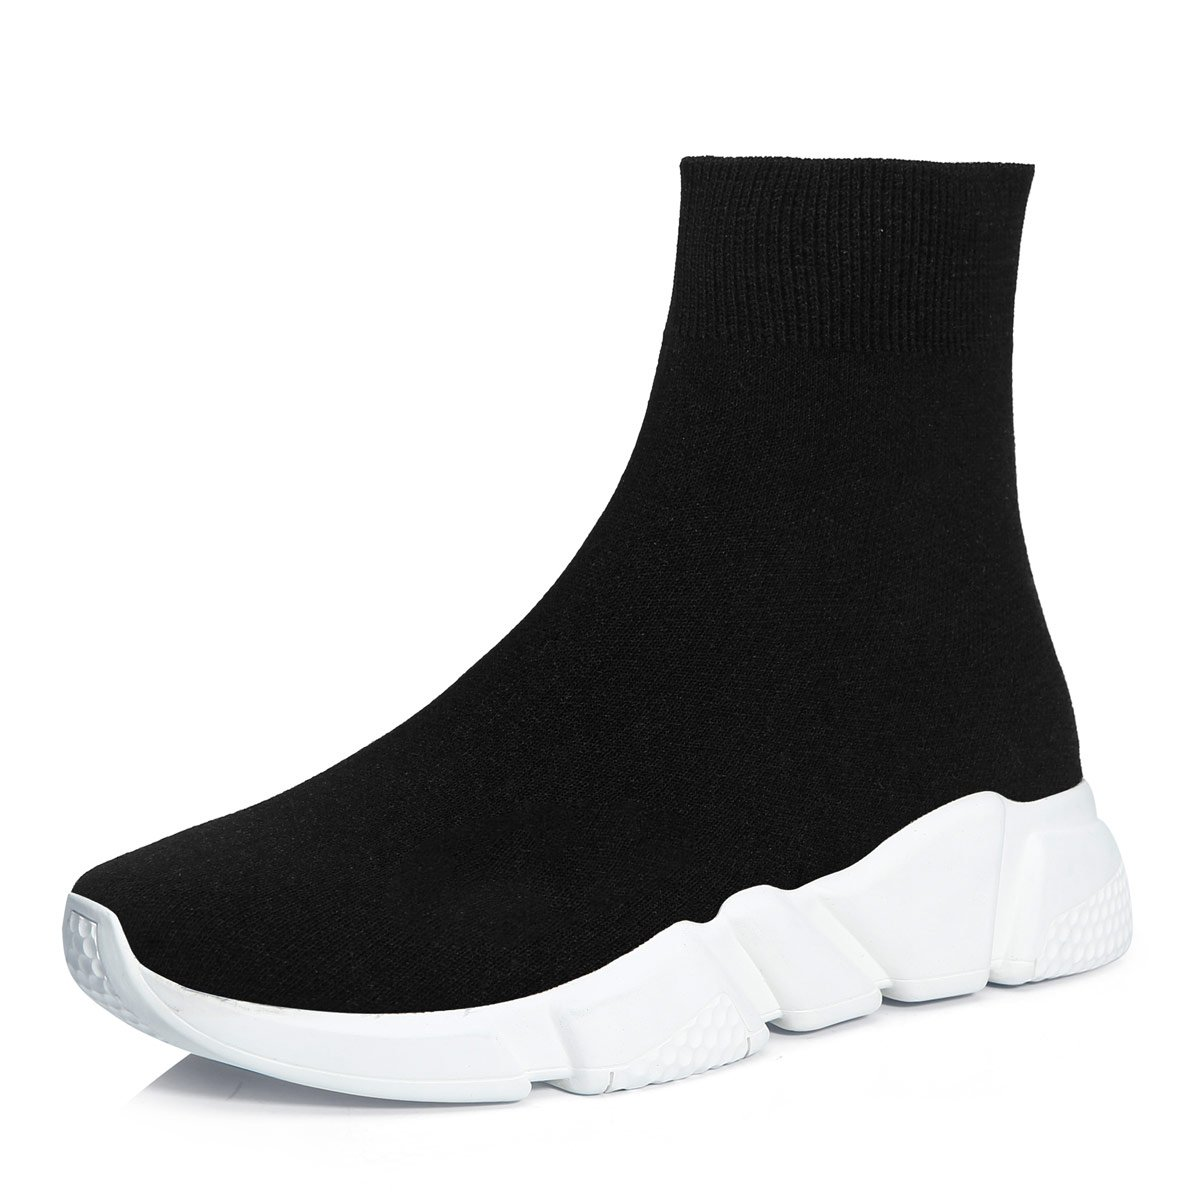 Hommes Femmes Mode Sliper Outdoor Chaussures Léger Mode Respirant Hommes athlétique B07CSCZD2X Baskets Sneakers Blanc 8dc9105 - robotanarchy.space